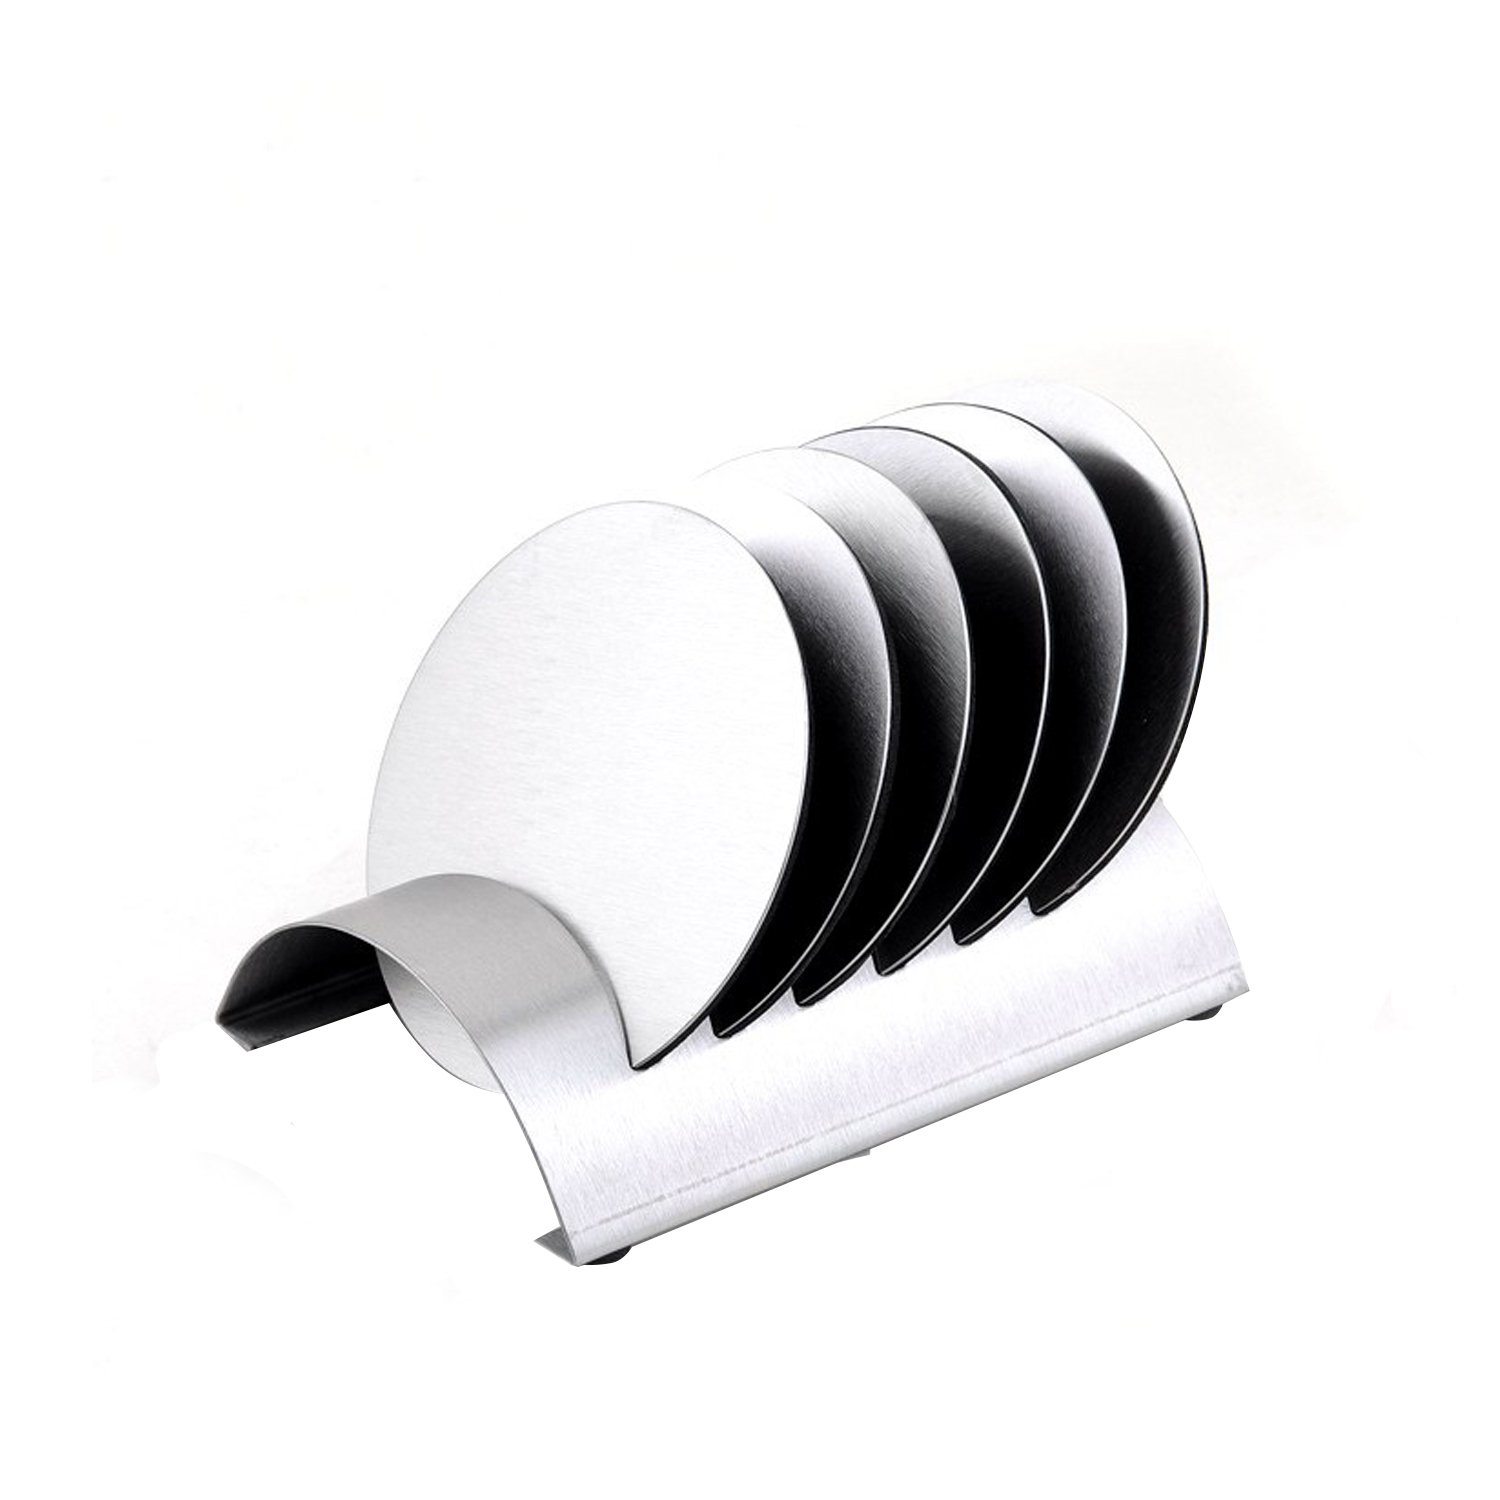 6Pcs Stainless Steel Coasters with Holder